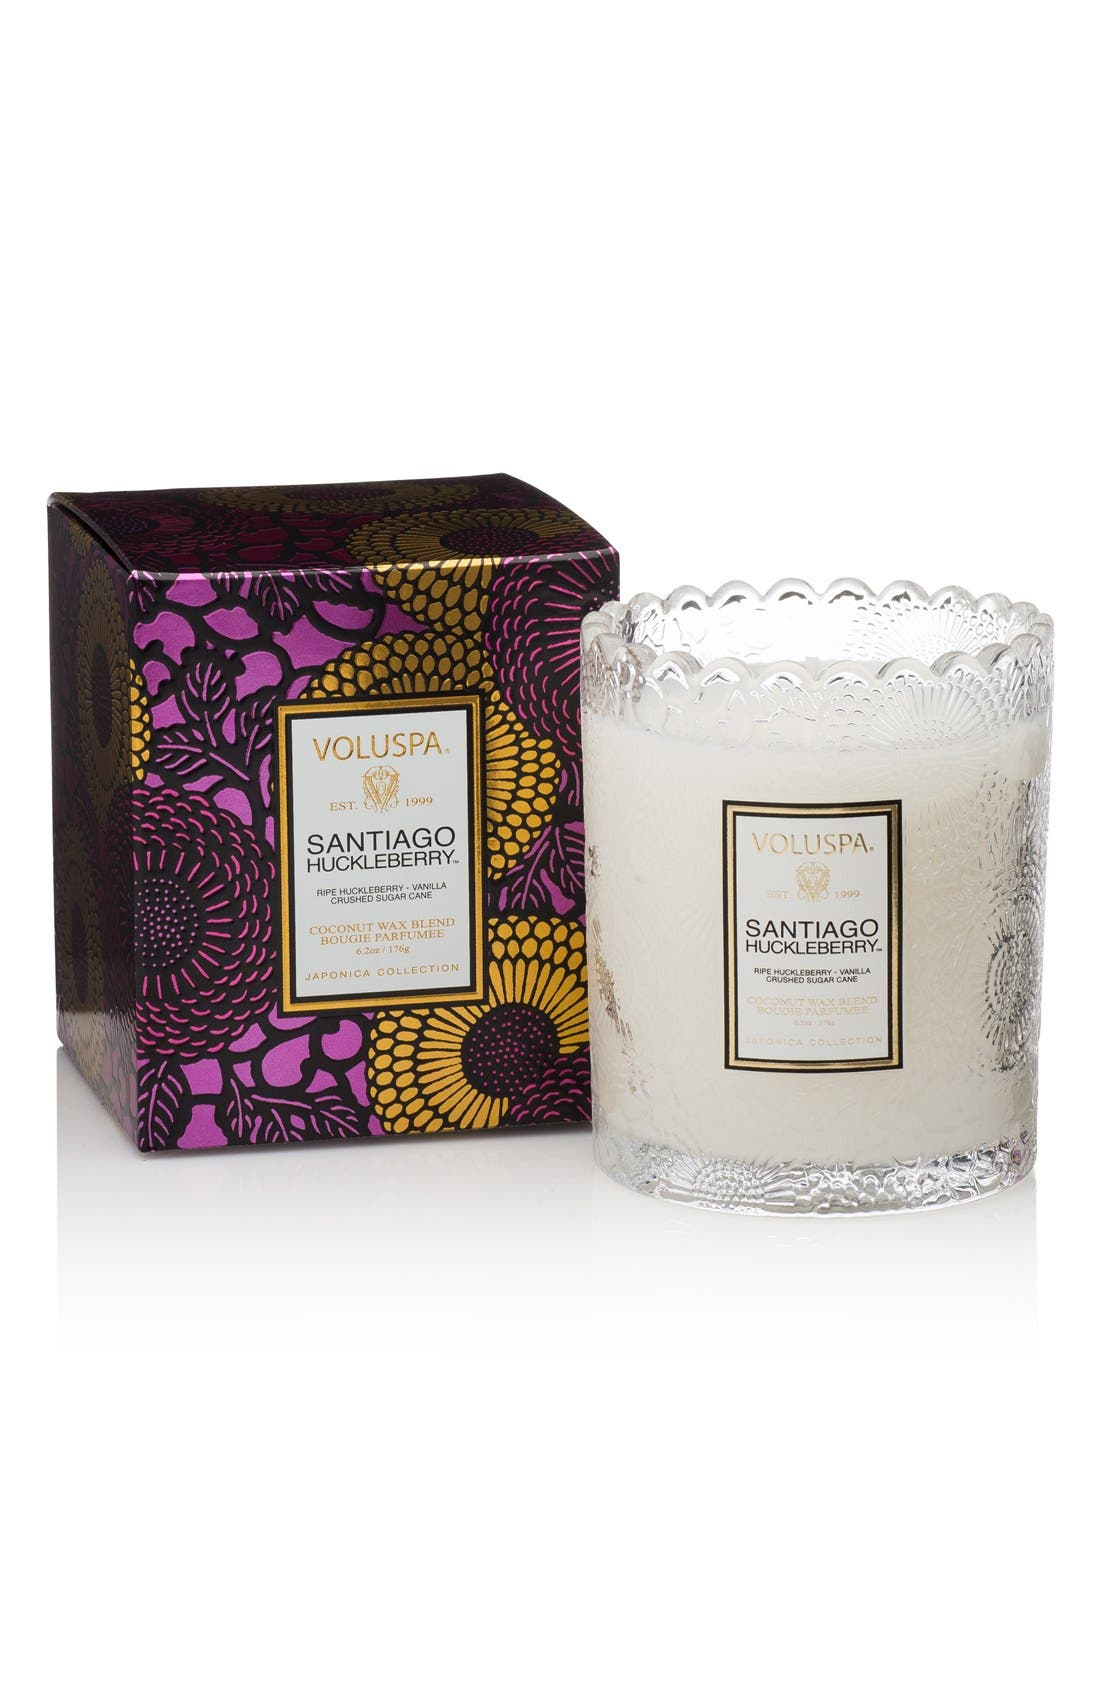 VOLUSPA Japonica Santiago Huckleberry Boxed Scalloped Candle